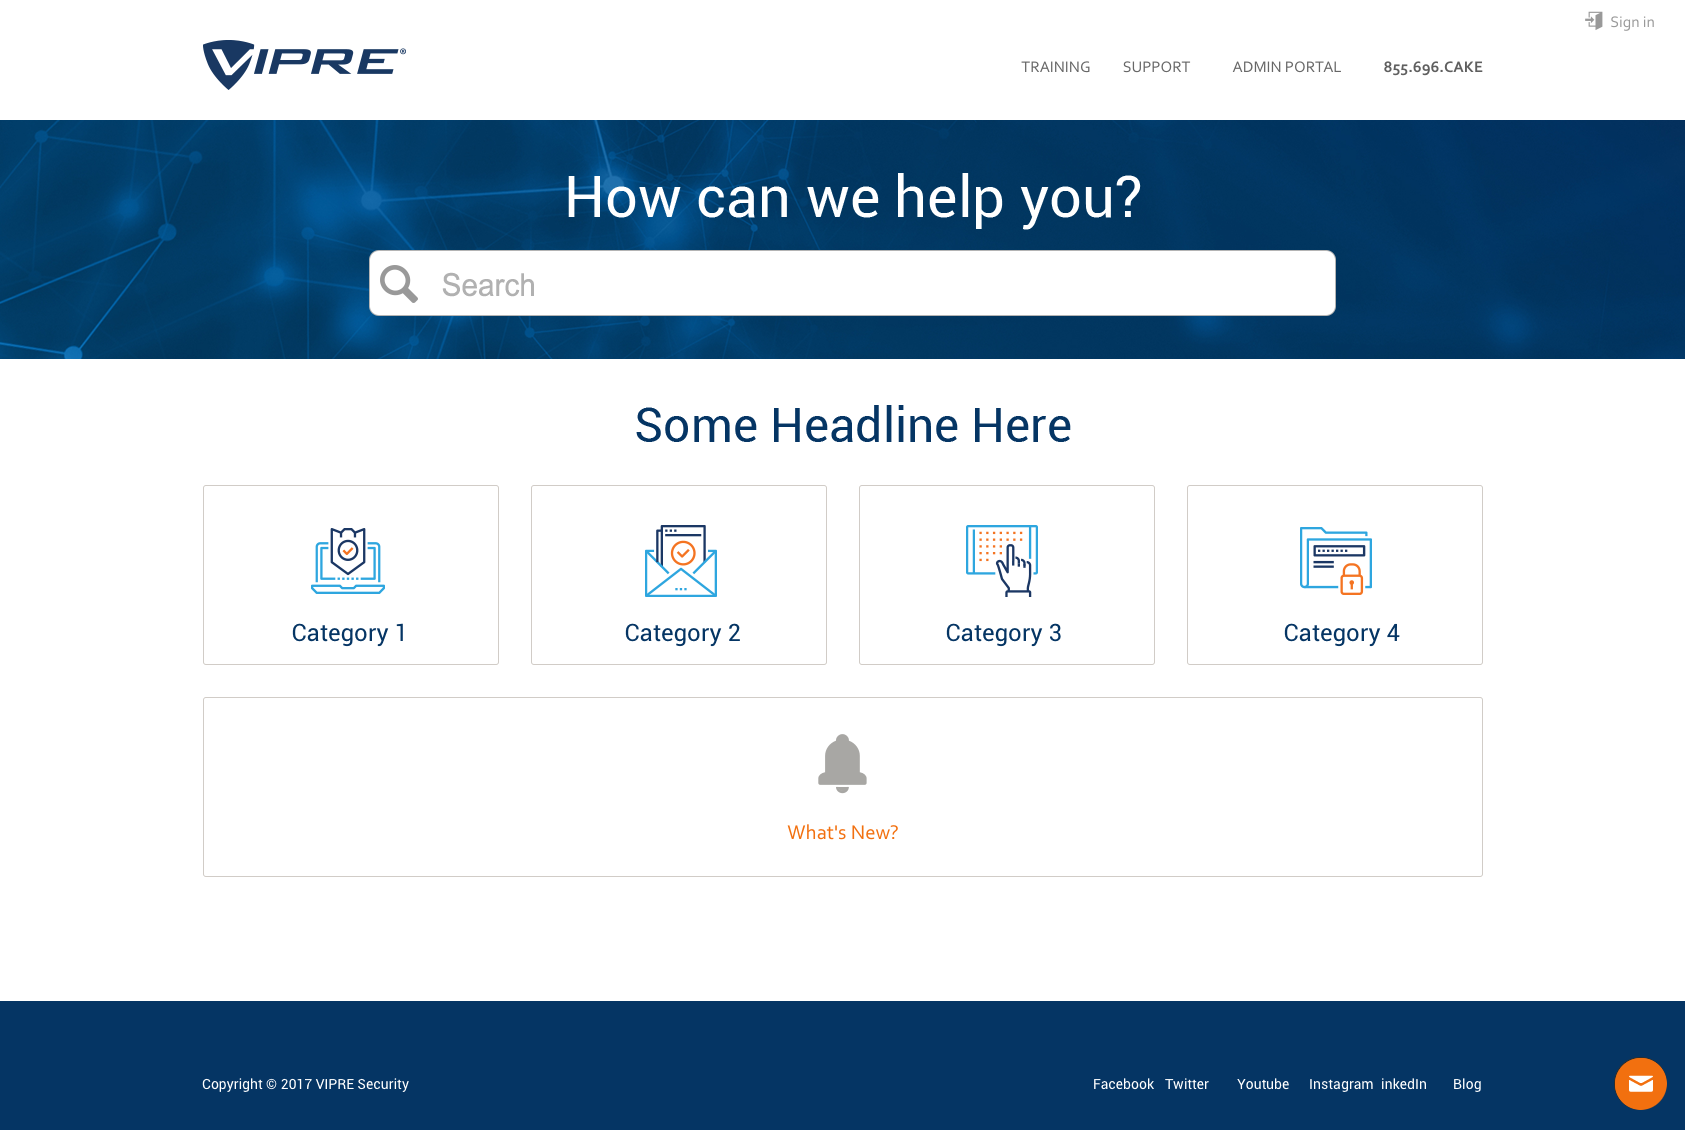 Website - MindTouch for VIPRE